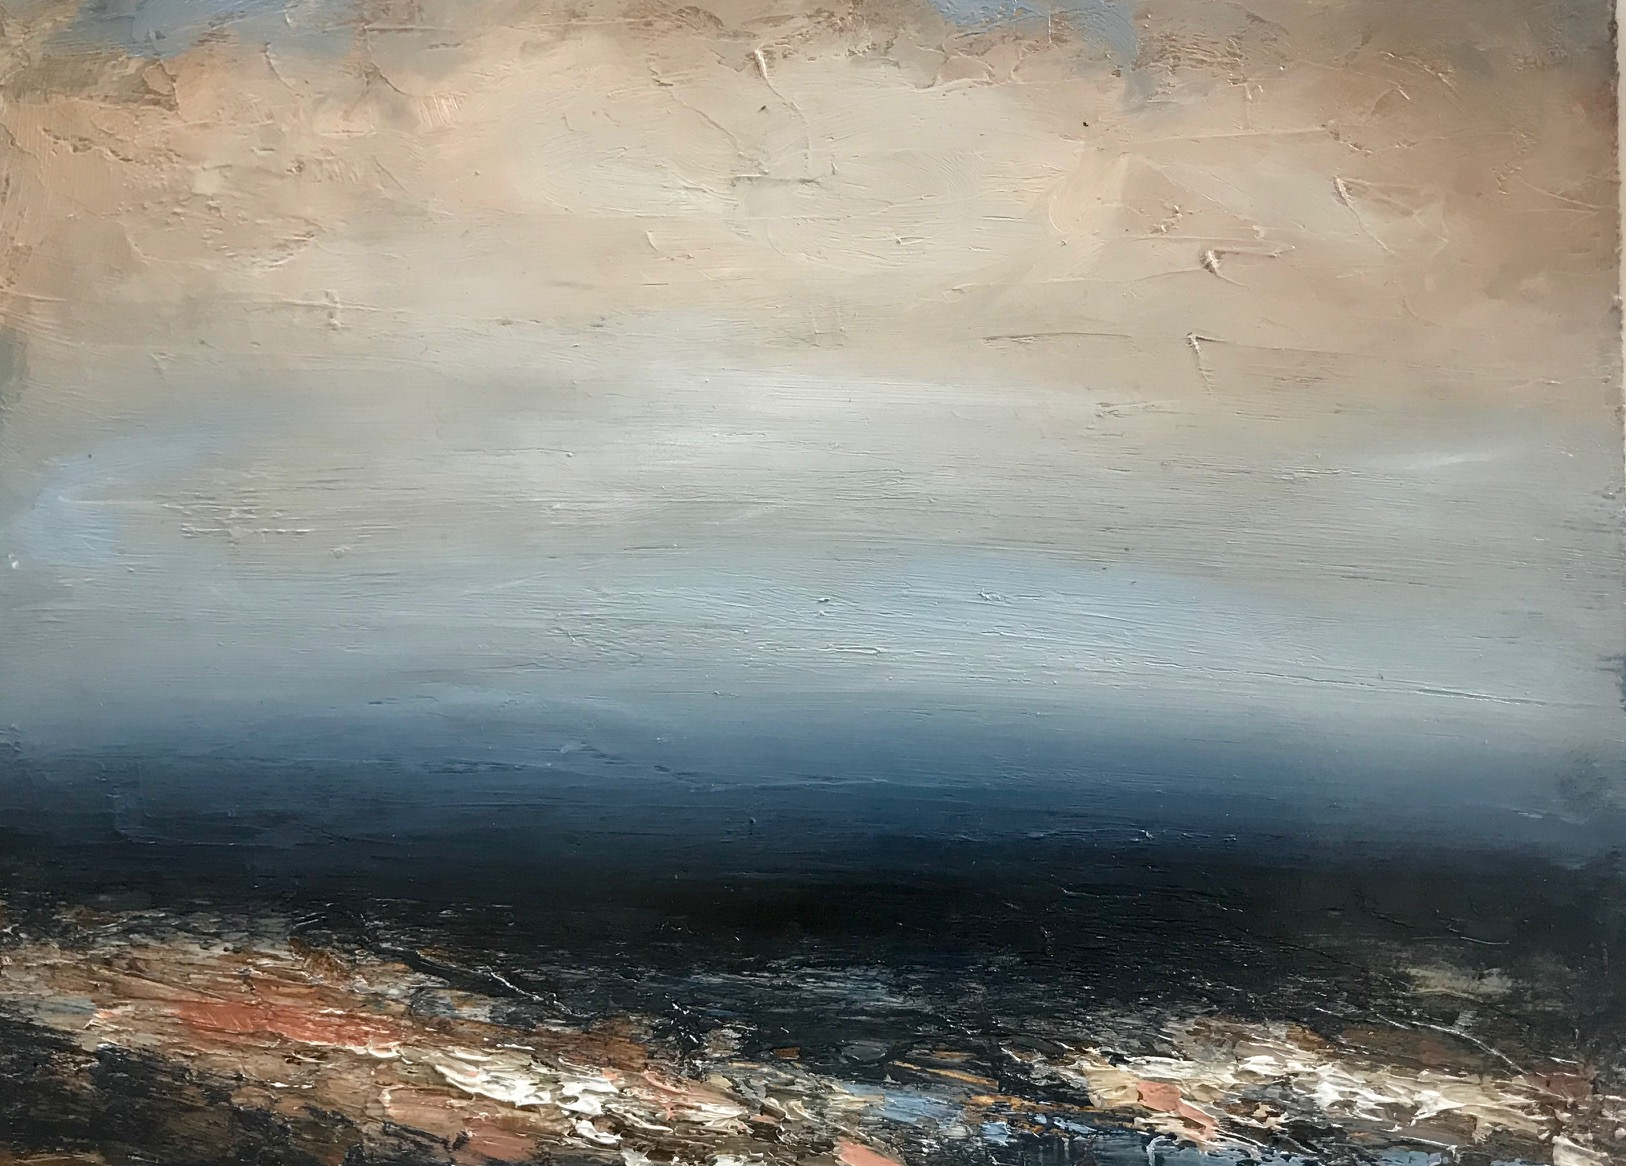 Artist: Hannah Ludnow  Title: Seascape III  Size: 20 x 48cm  Medium: oil on canvas  Price: £360